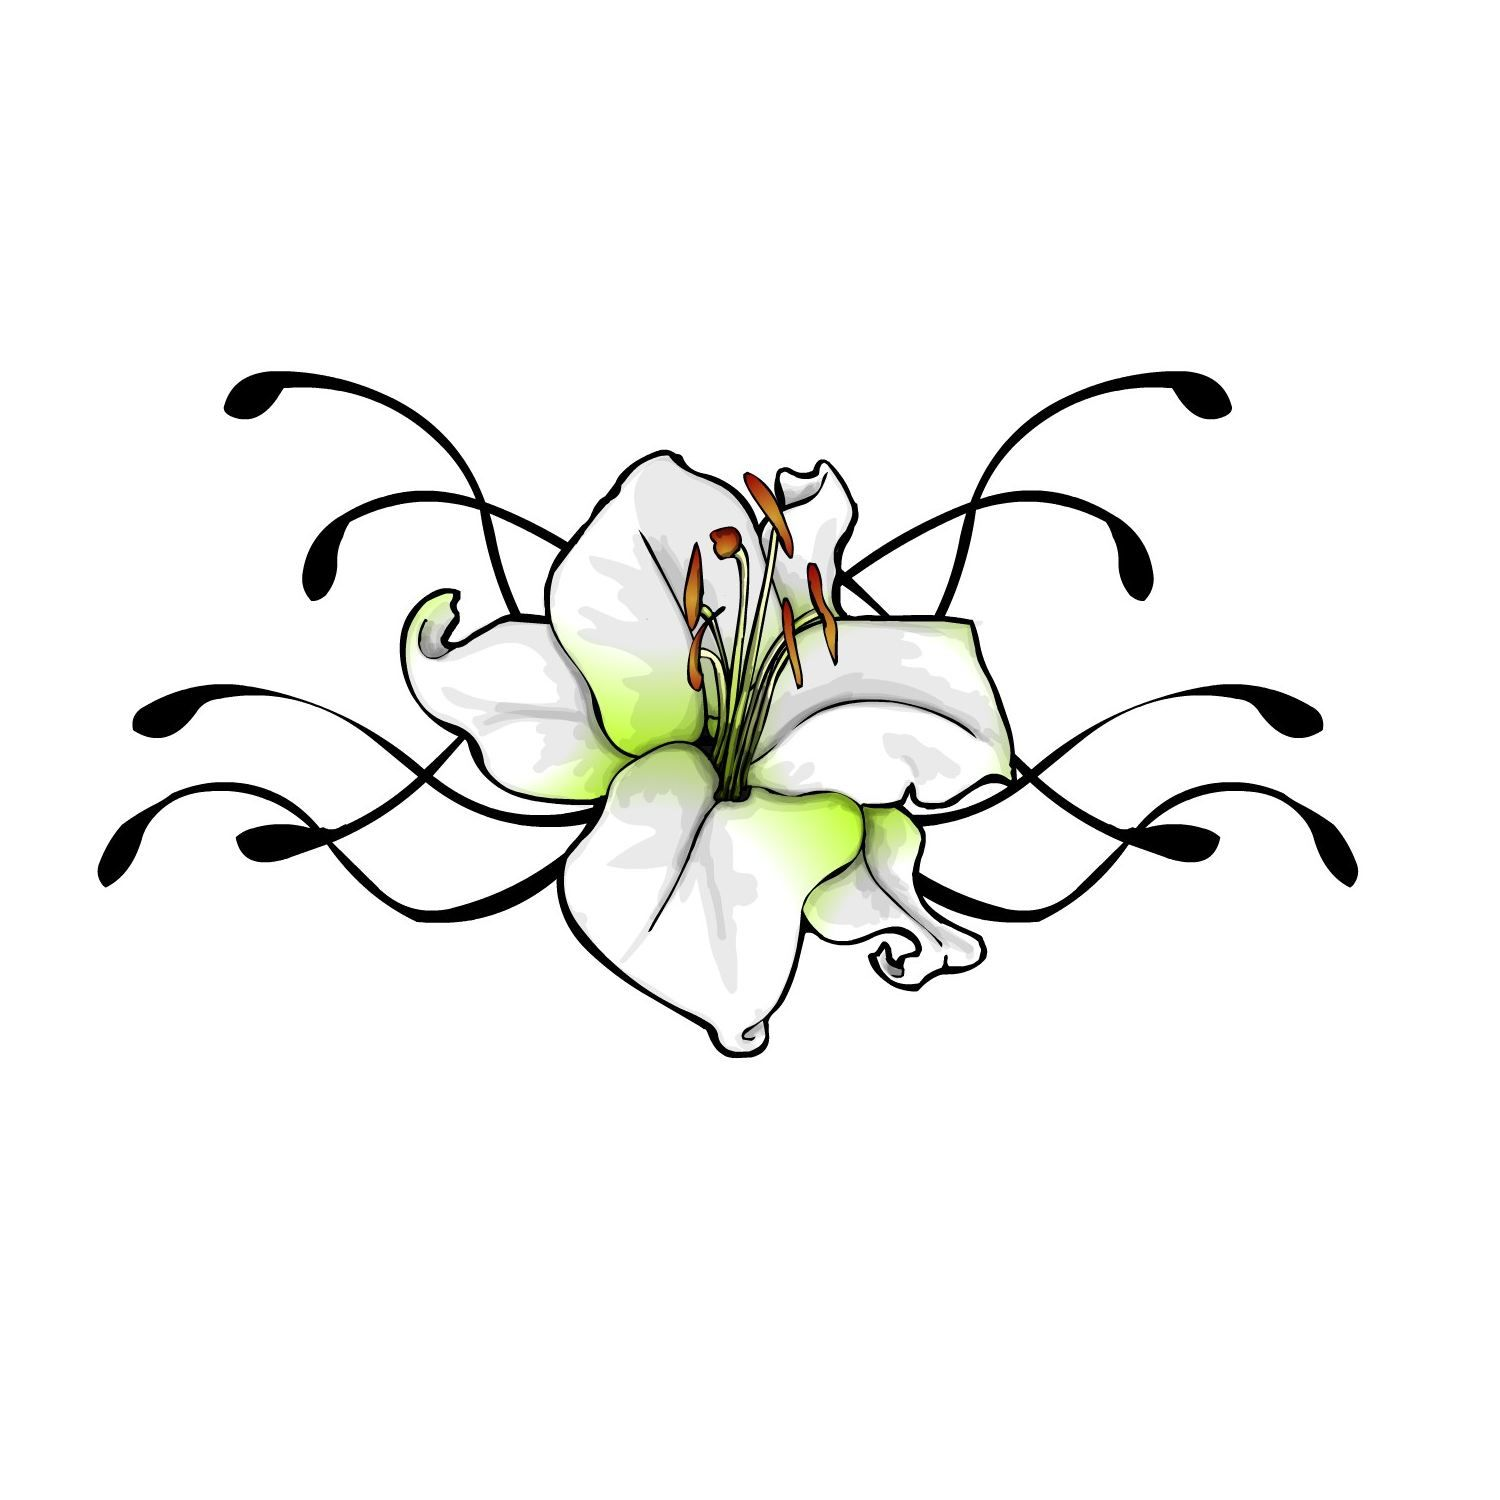 Flower Drawings For Tattoos Tattoo Flower Designs Lily Flowers